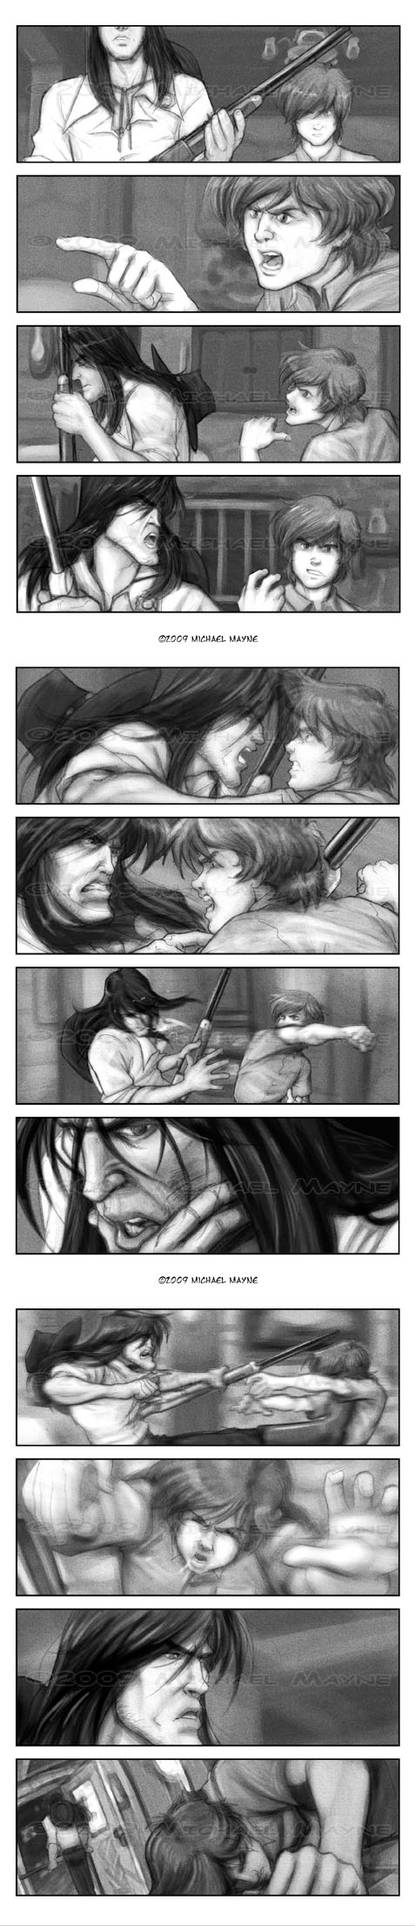 Old West comic test pages